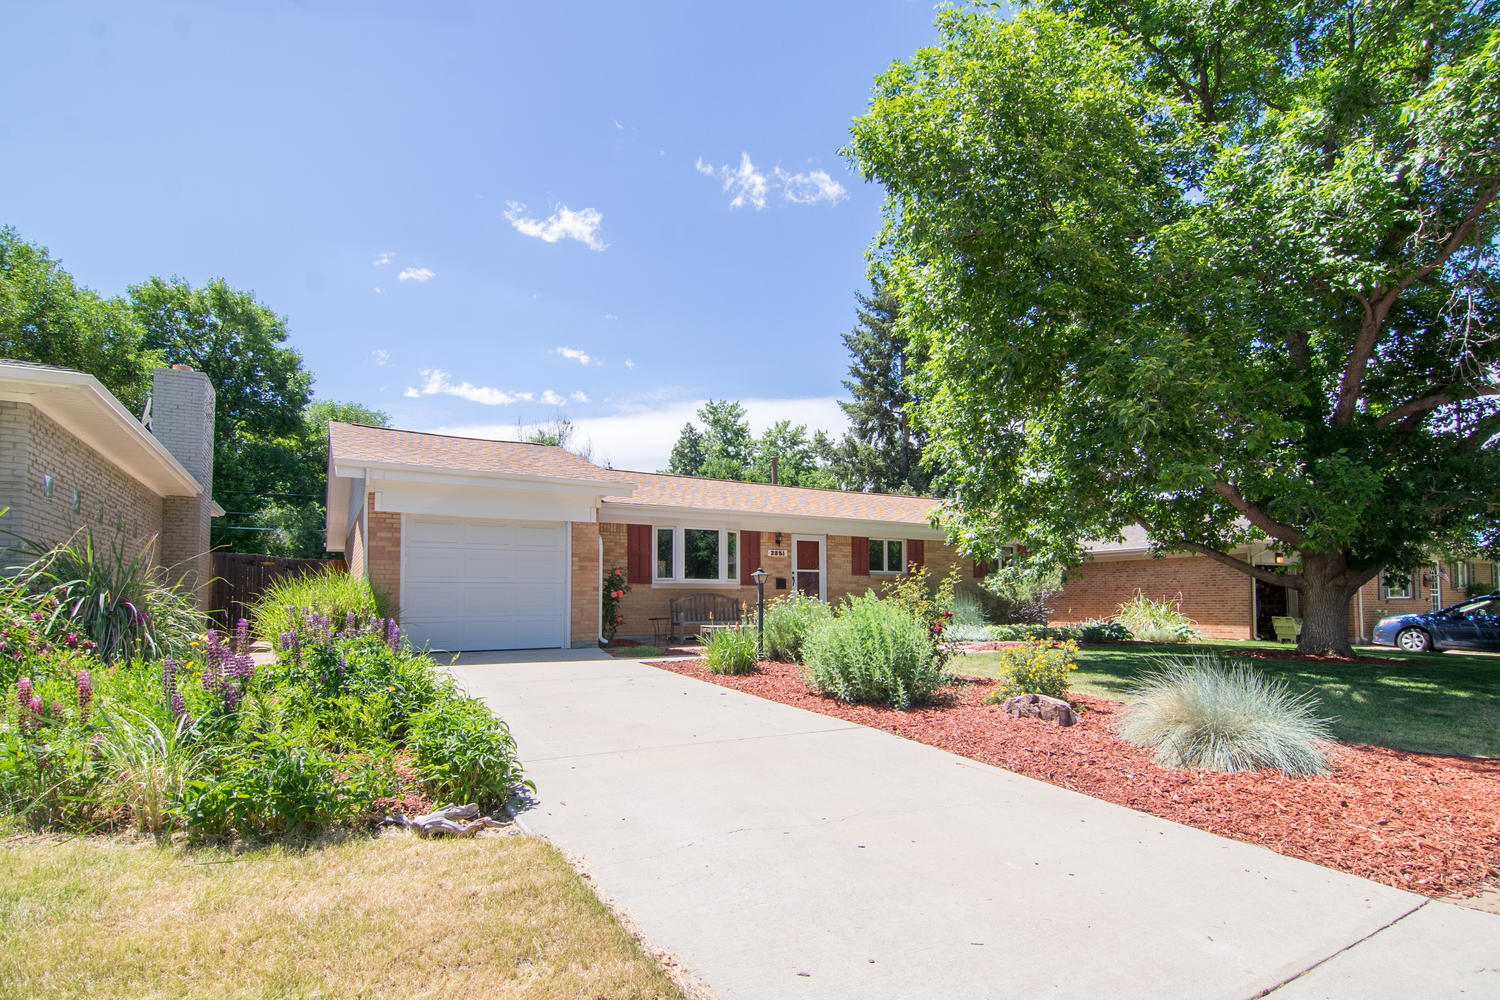 Single Family Home for Sale at You will fall in love with this spectacular, remodeled home. 2851 South York Street University, Denver, Colorado, 80210 United States